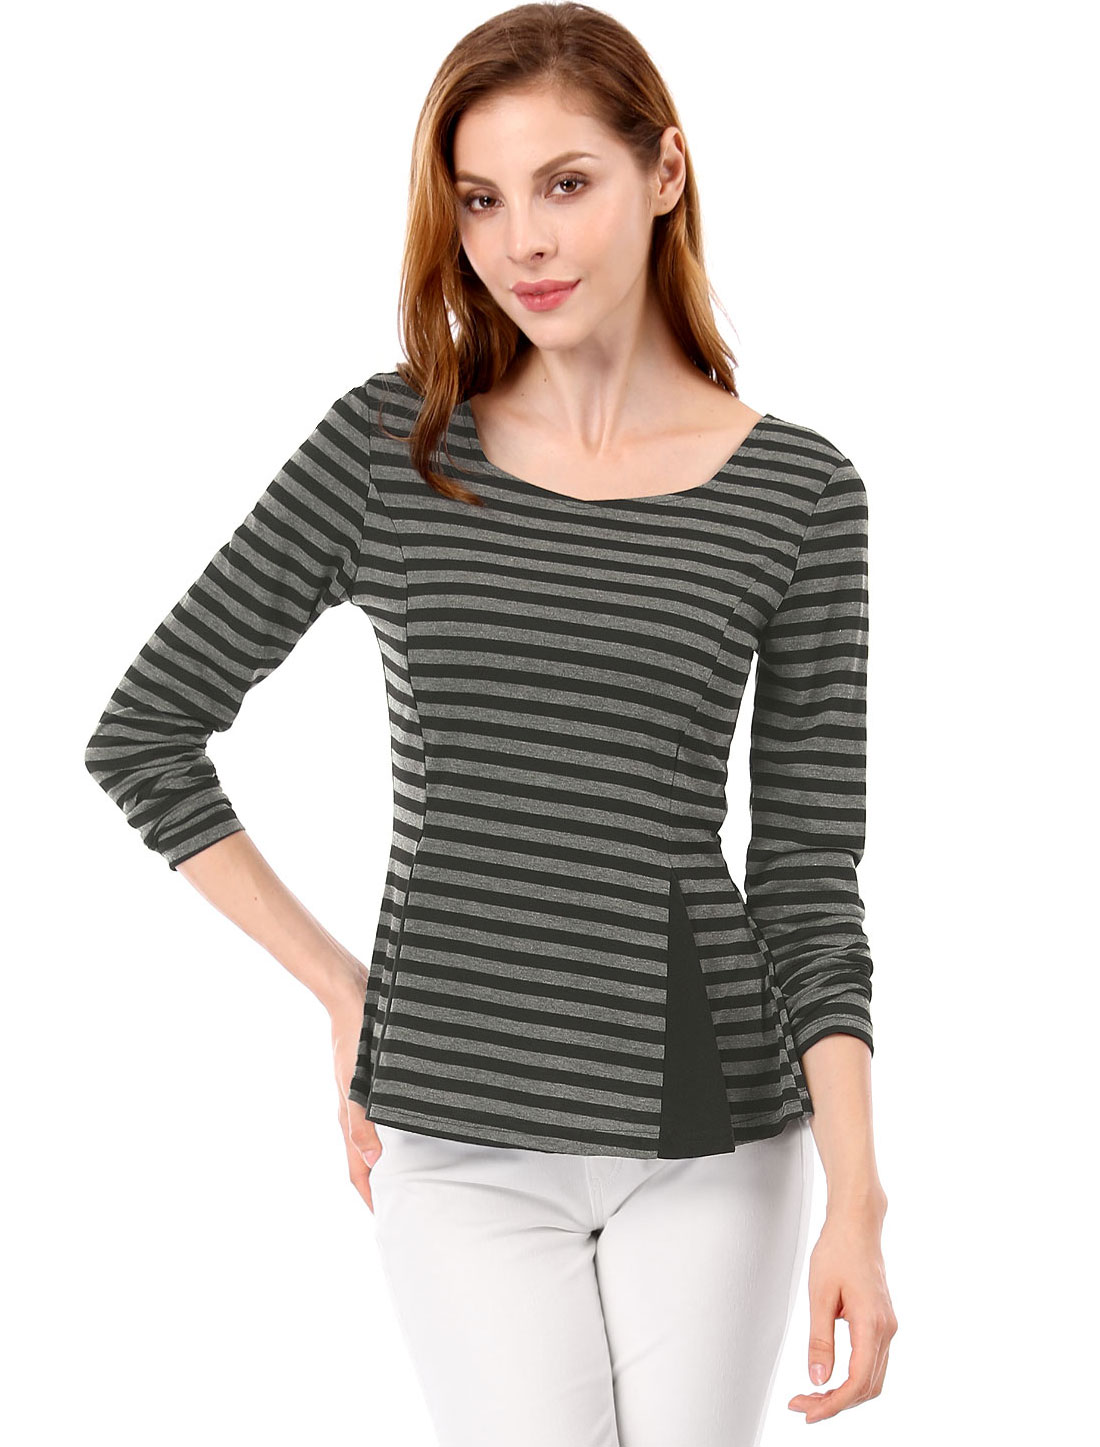 Ladies Scoop Neck Bar Striped Panel Design Peplum Top Black Gray L